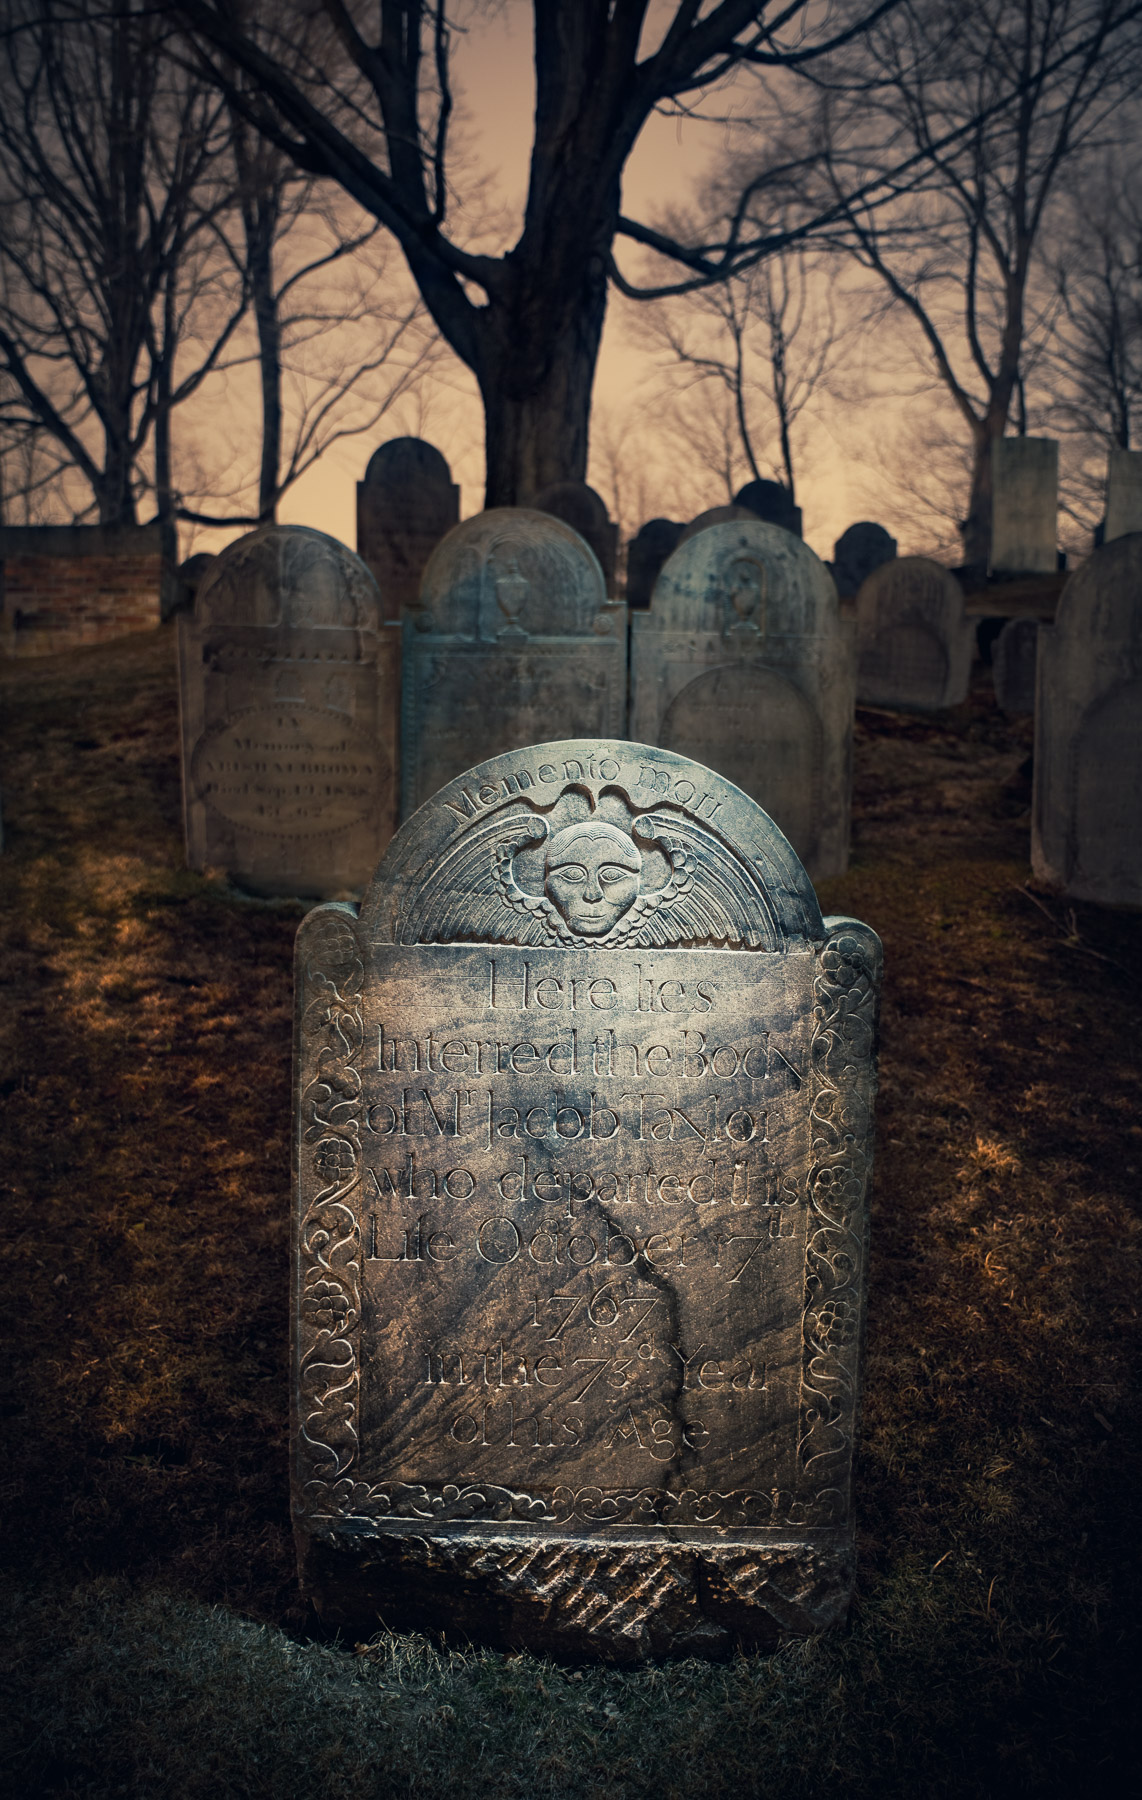 Jacob Taylor has resided at Sleepy Hollow in Concord, Massachusetts, since 1767. The image was made in 2010 with a Surefire G2 flashlight from slightly above the stone, flagged with black mat board so the camera didn't see the light. The three headstones in the middleground were lit with the same light source, but indirectly. I bounced the light off of a  12-inch Wescott reflector  from behind the central stone. The shallow depth of field and strong vignetting also help to isolate the primary subject. Canon 5D Mark II,  Canon 50mm f/1.4  lens. 3 minutes, f/4, 100 ISO.